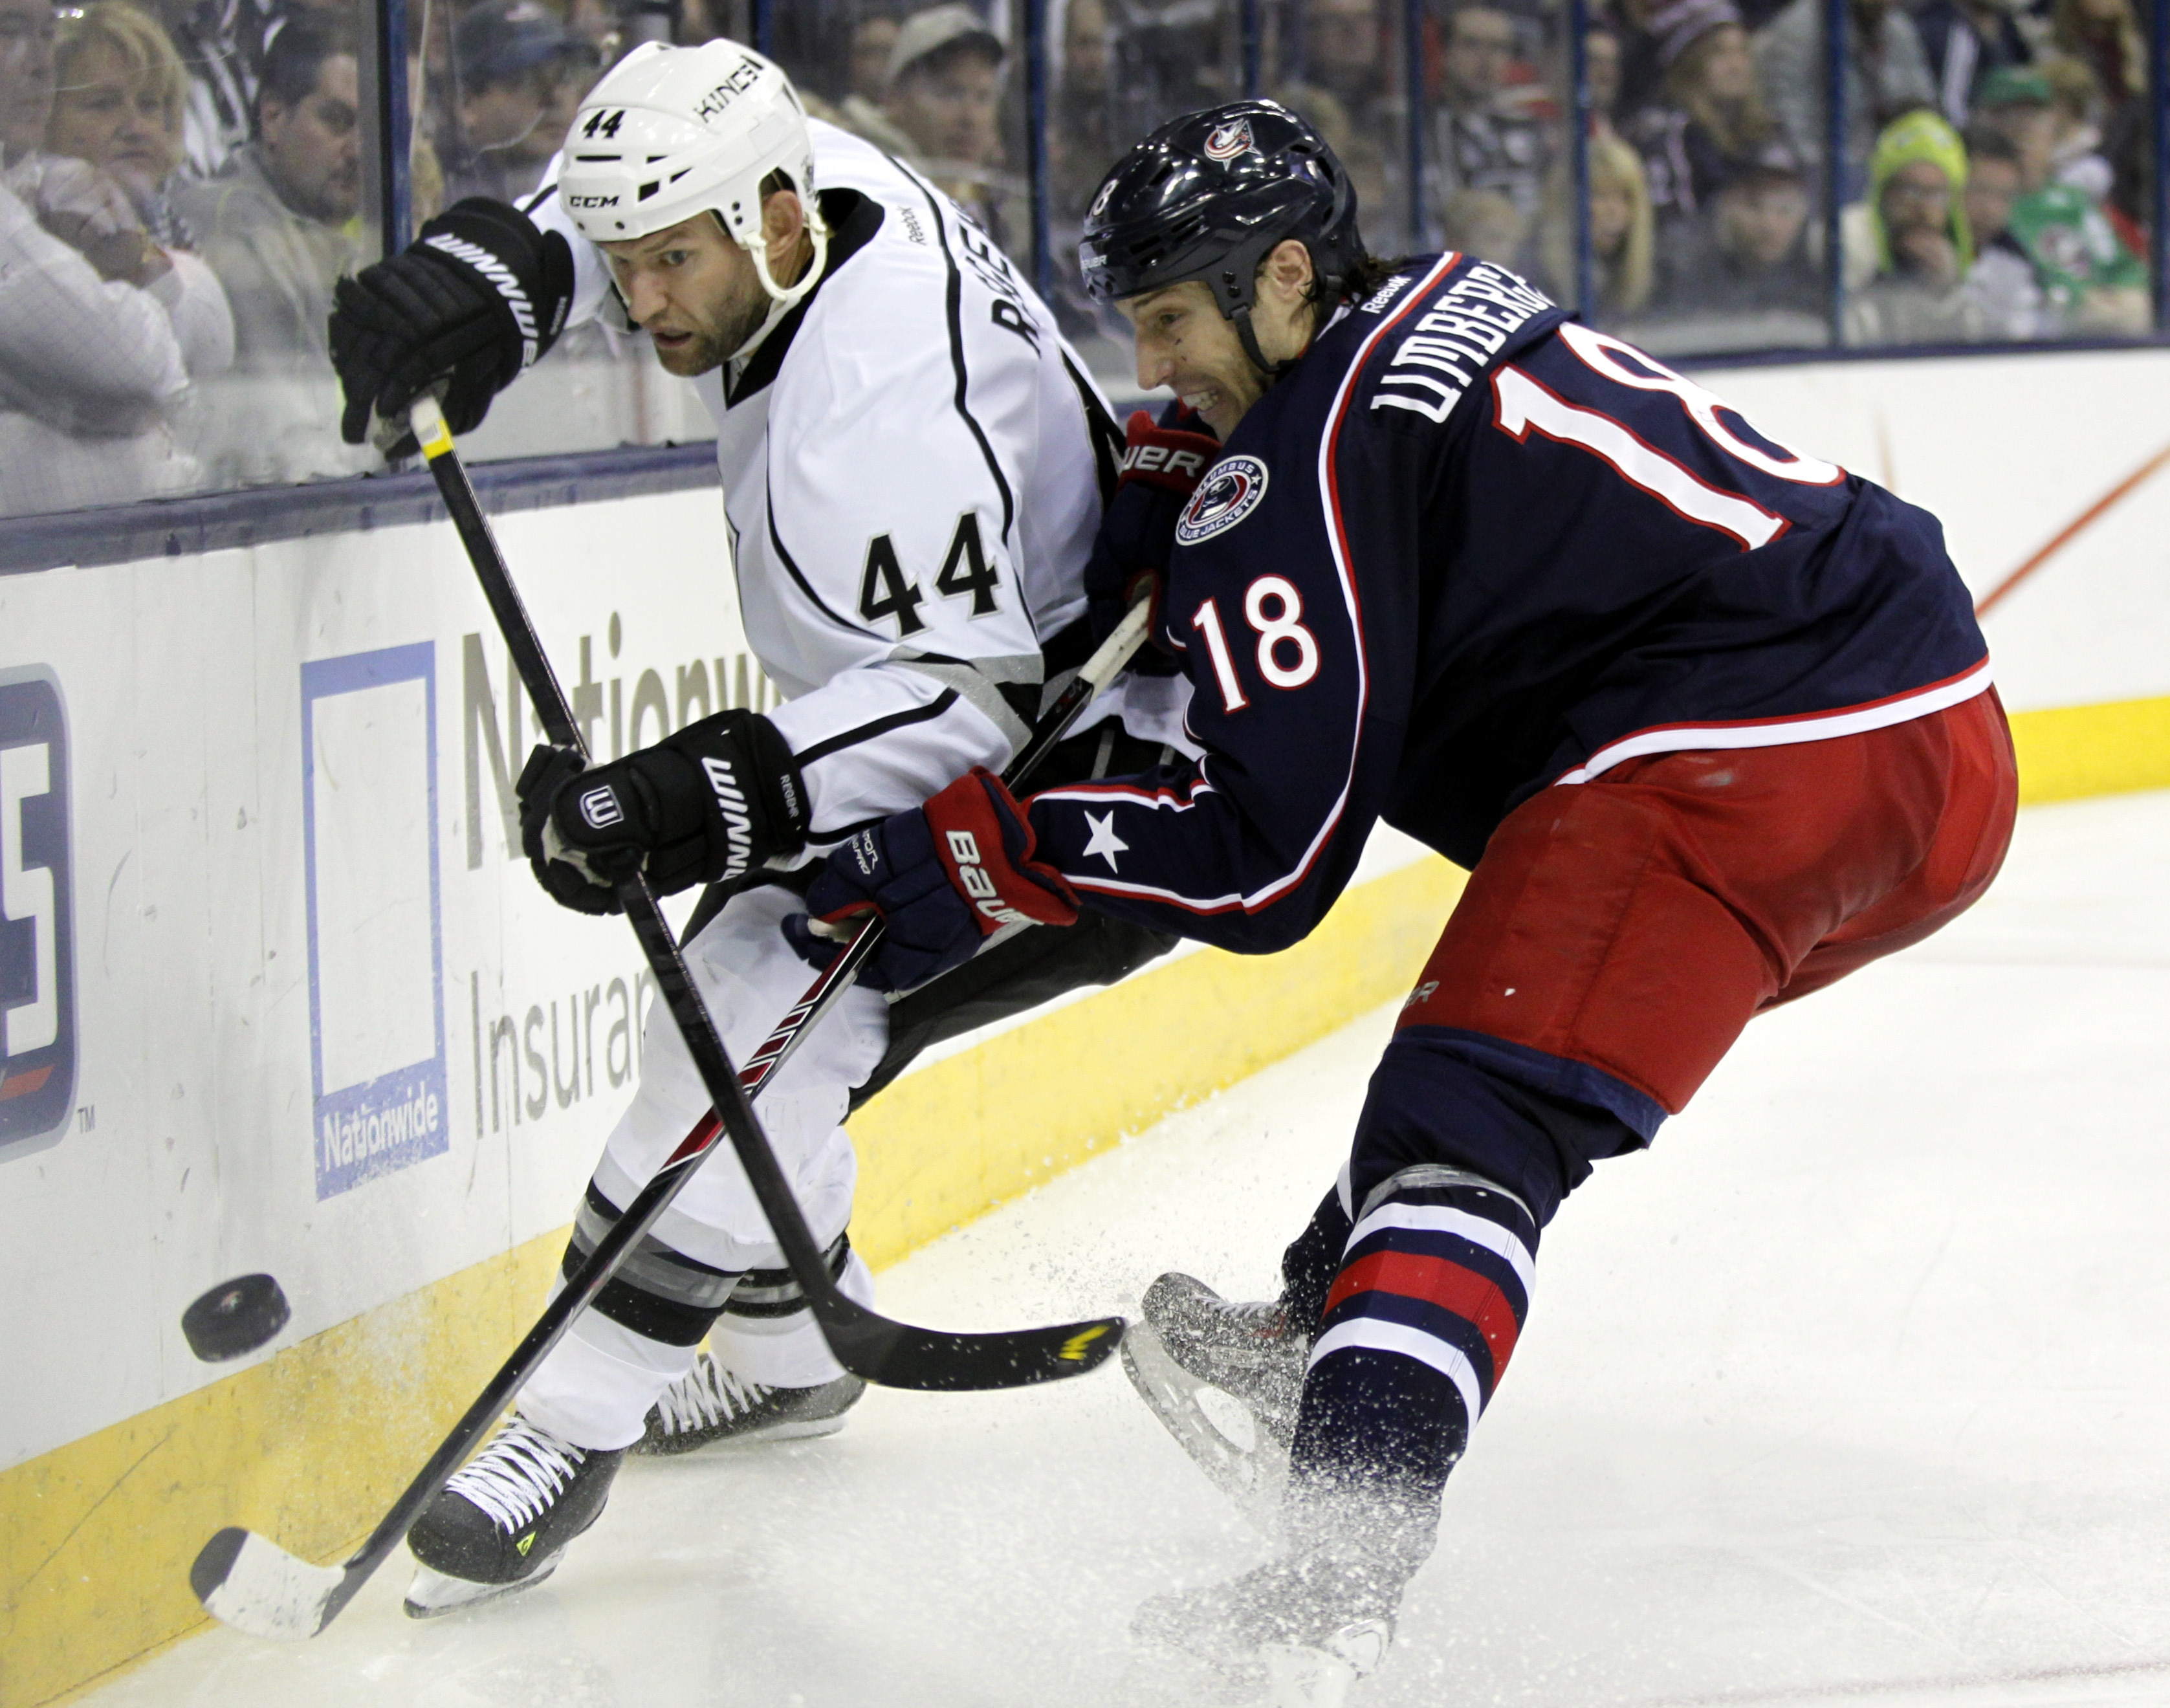 Ex Sabre Robyn Regehr (44) has been a workhorse on the blue line for the Los Angeles Kings.